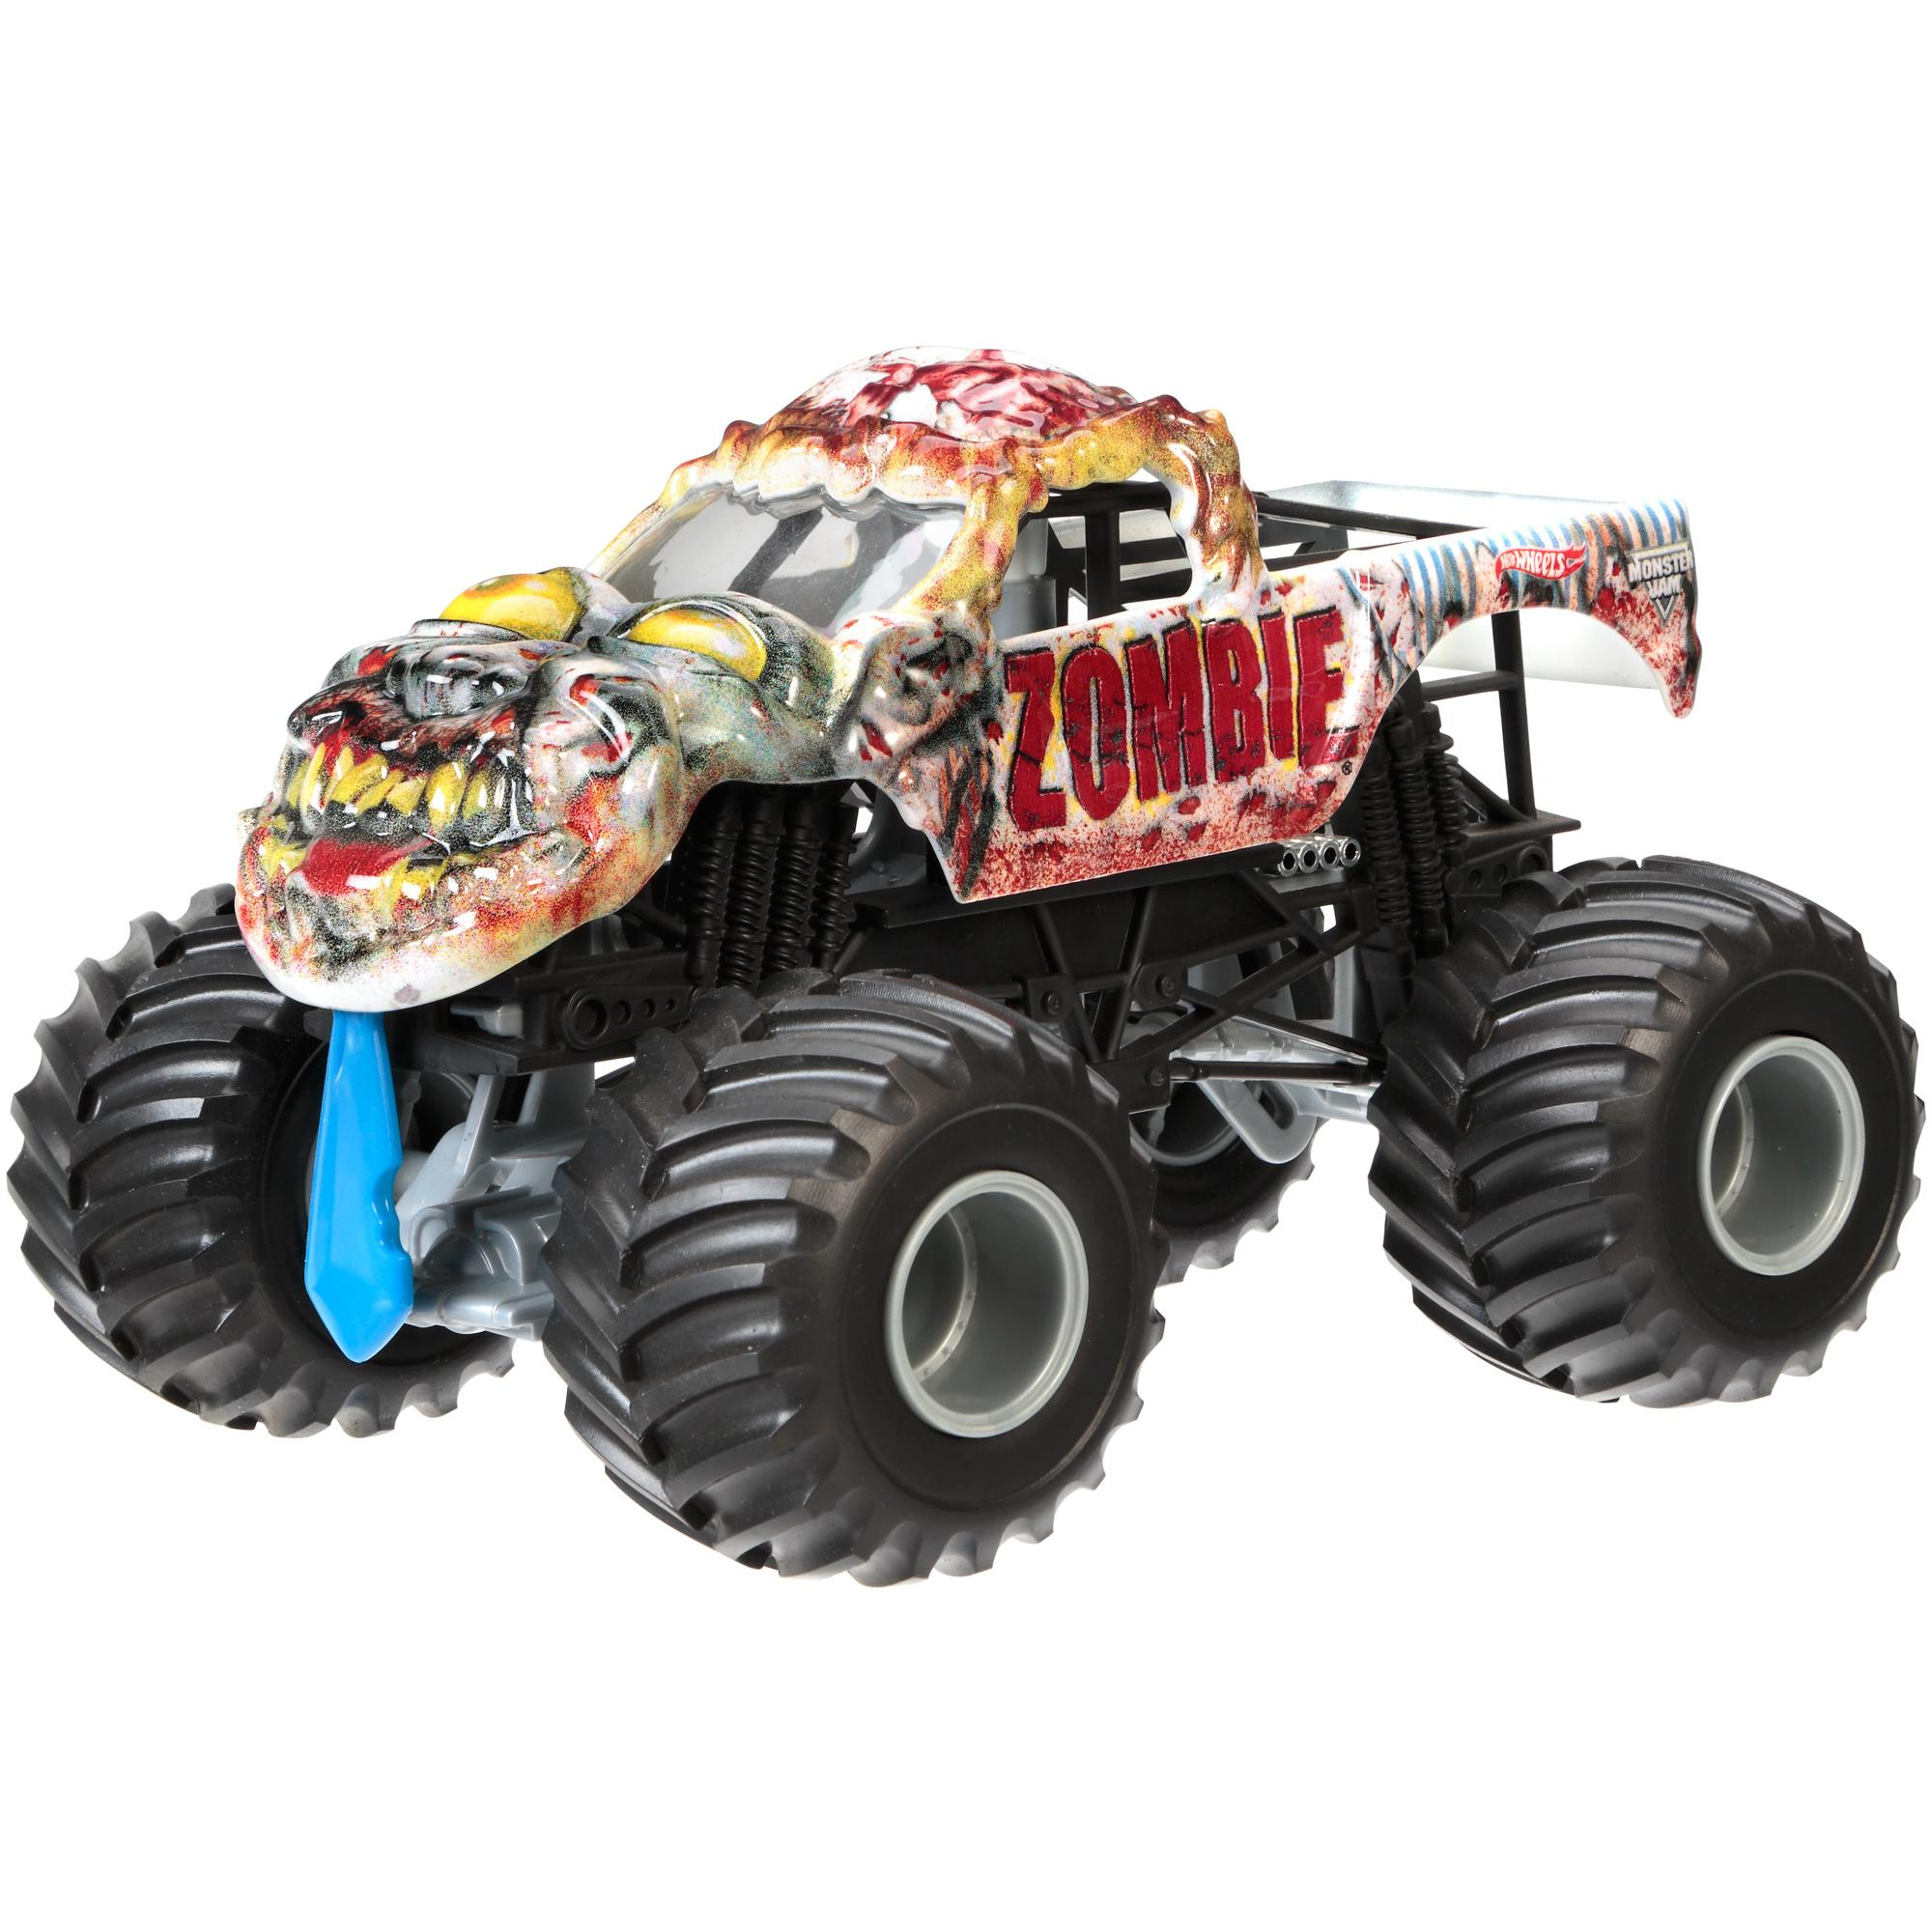 Hotwheels Hot Wheels Monster Jam 1 24 Assortment Walmart Com